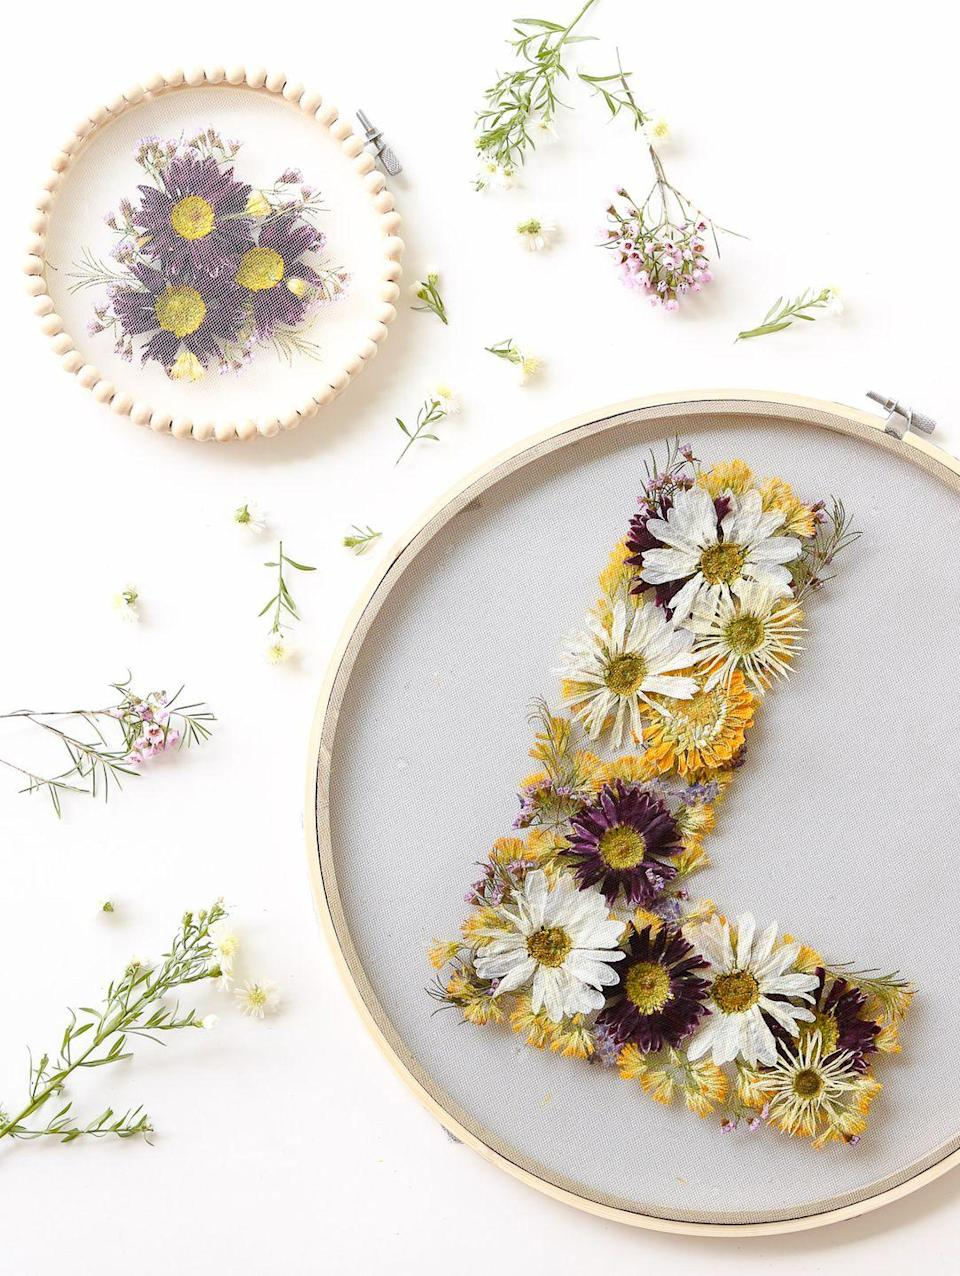 """<p>The beauty about pressed flowers is that you turn them into just about anything. In this case, seal flowers between two sheets of tulle inside a hoop and hang somewhere it'll be seen. </p><p><em><a href=""""https://www.lilyardor.com/pressed-floral-hoops/"""" rel=""""nofollow noopener"""" target=""""_blank"""" data-ylk=""""slk:Get the tutorial at Lily Ardor »"""" class=""""link rapid-noclick-resp"""">Get the tutorial at Lily Ardor » </a></em></p>"""